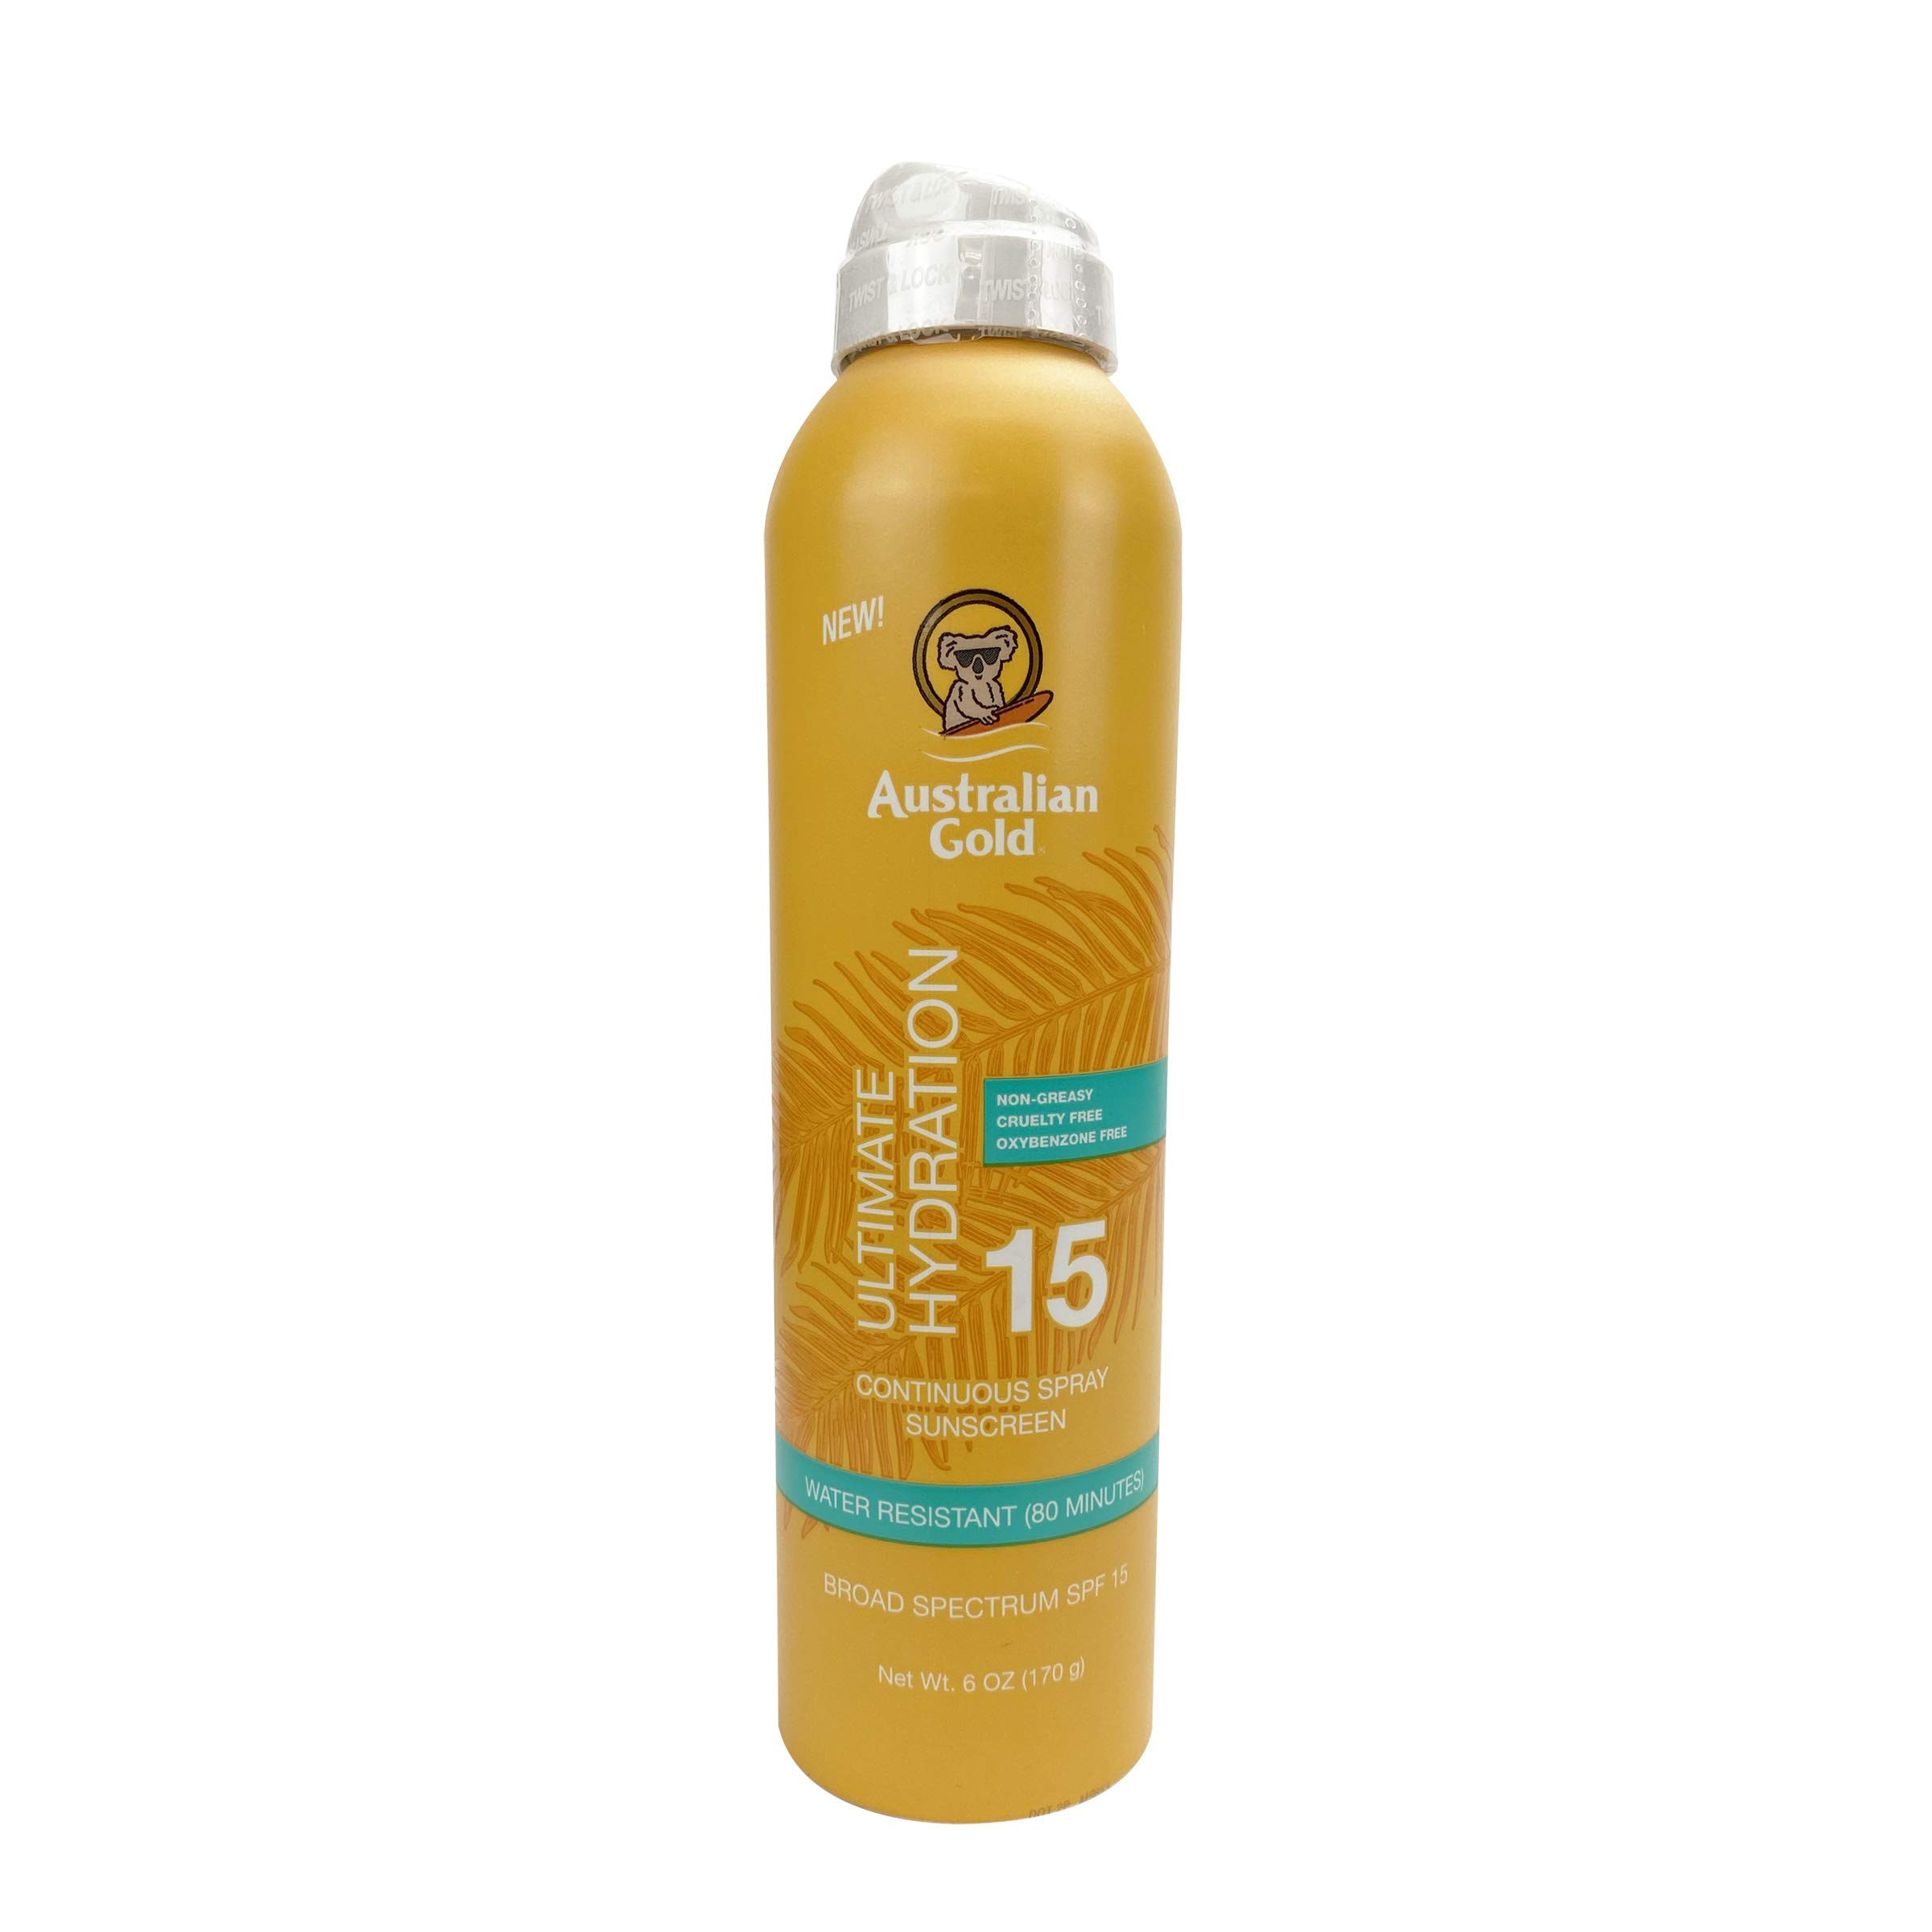 Australian Gold Continuous Spray Sunscreen SPF 15, 6 Ounce | Dries Fast | Broad Spectrum | Water Resistant | Non-Greasy | Oxybenzone Free | Cruelty Free